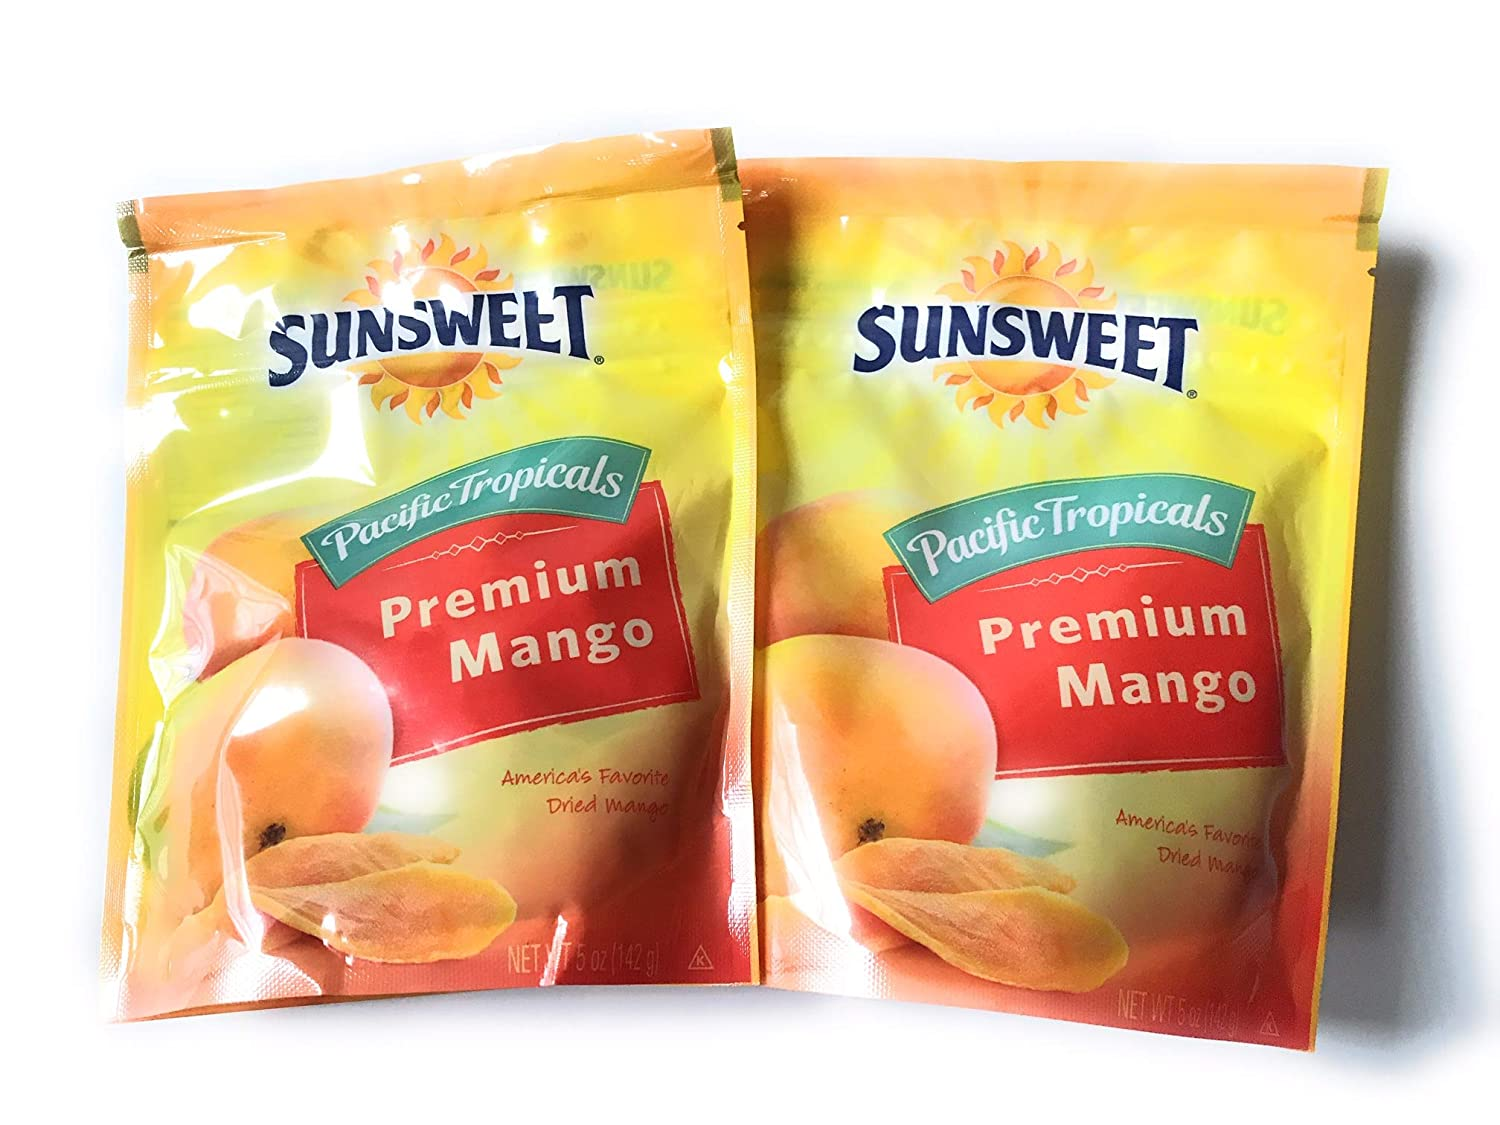 Sunsweet Dried Mangoes - Two 5 Ounce Packages of Dry Mangos